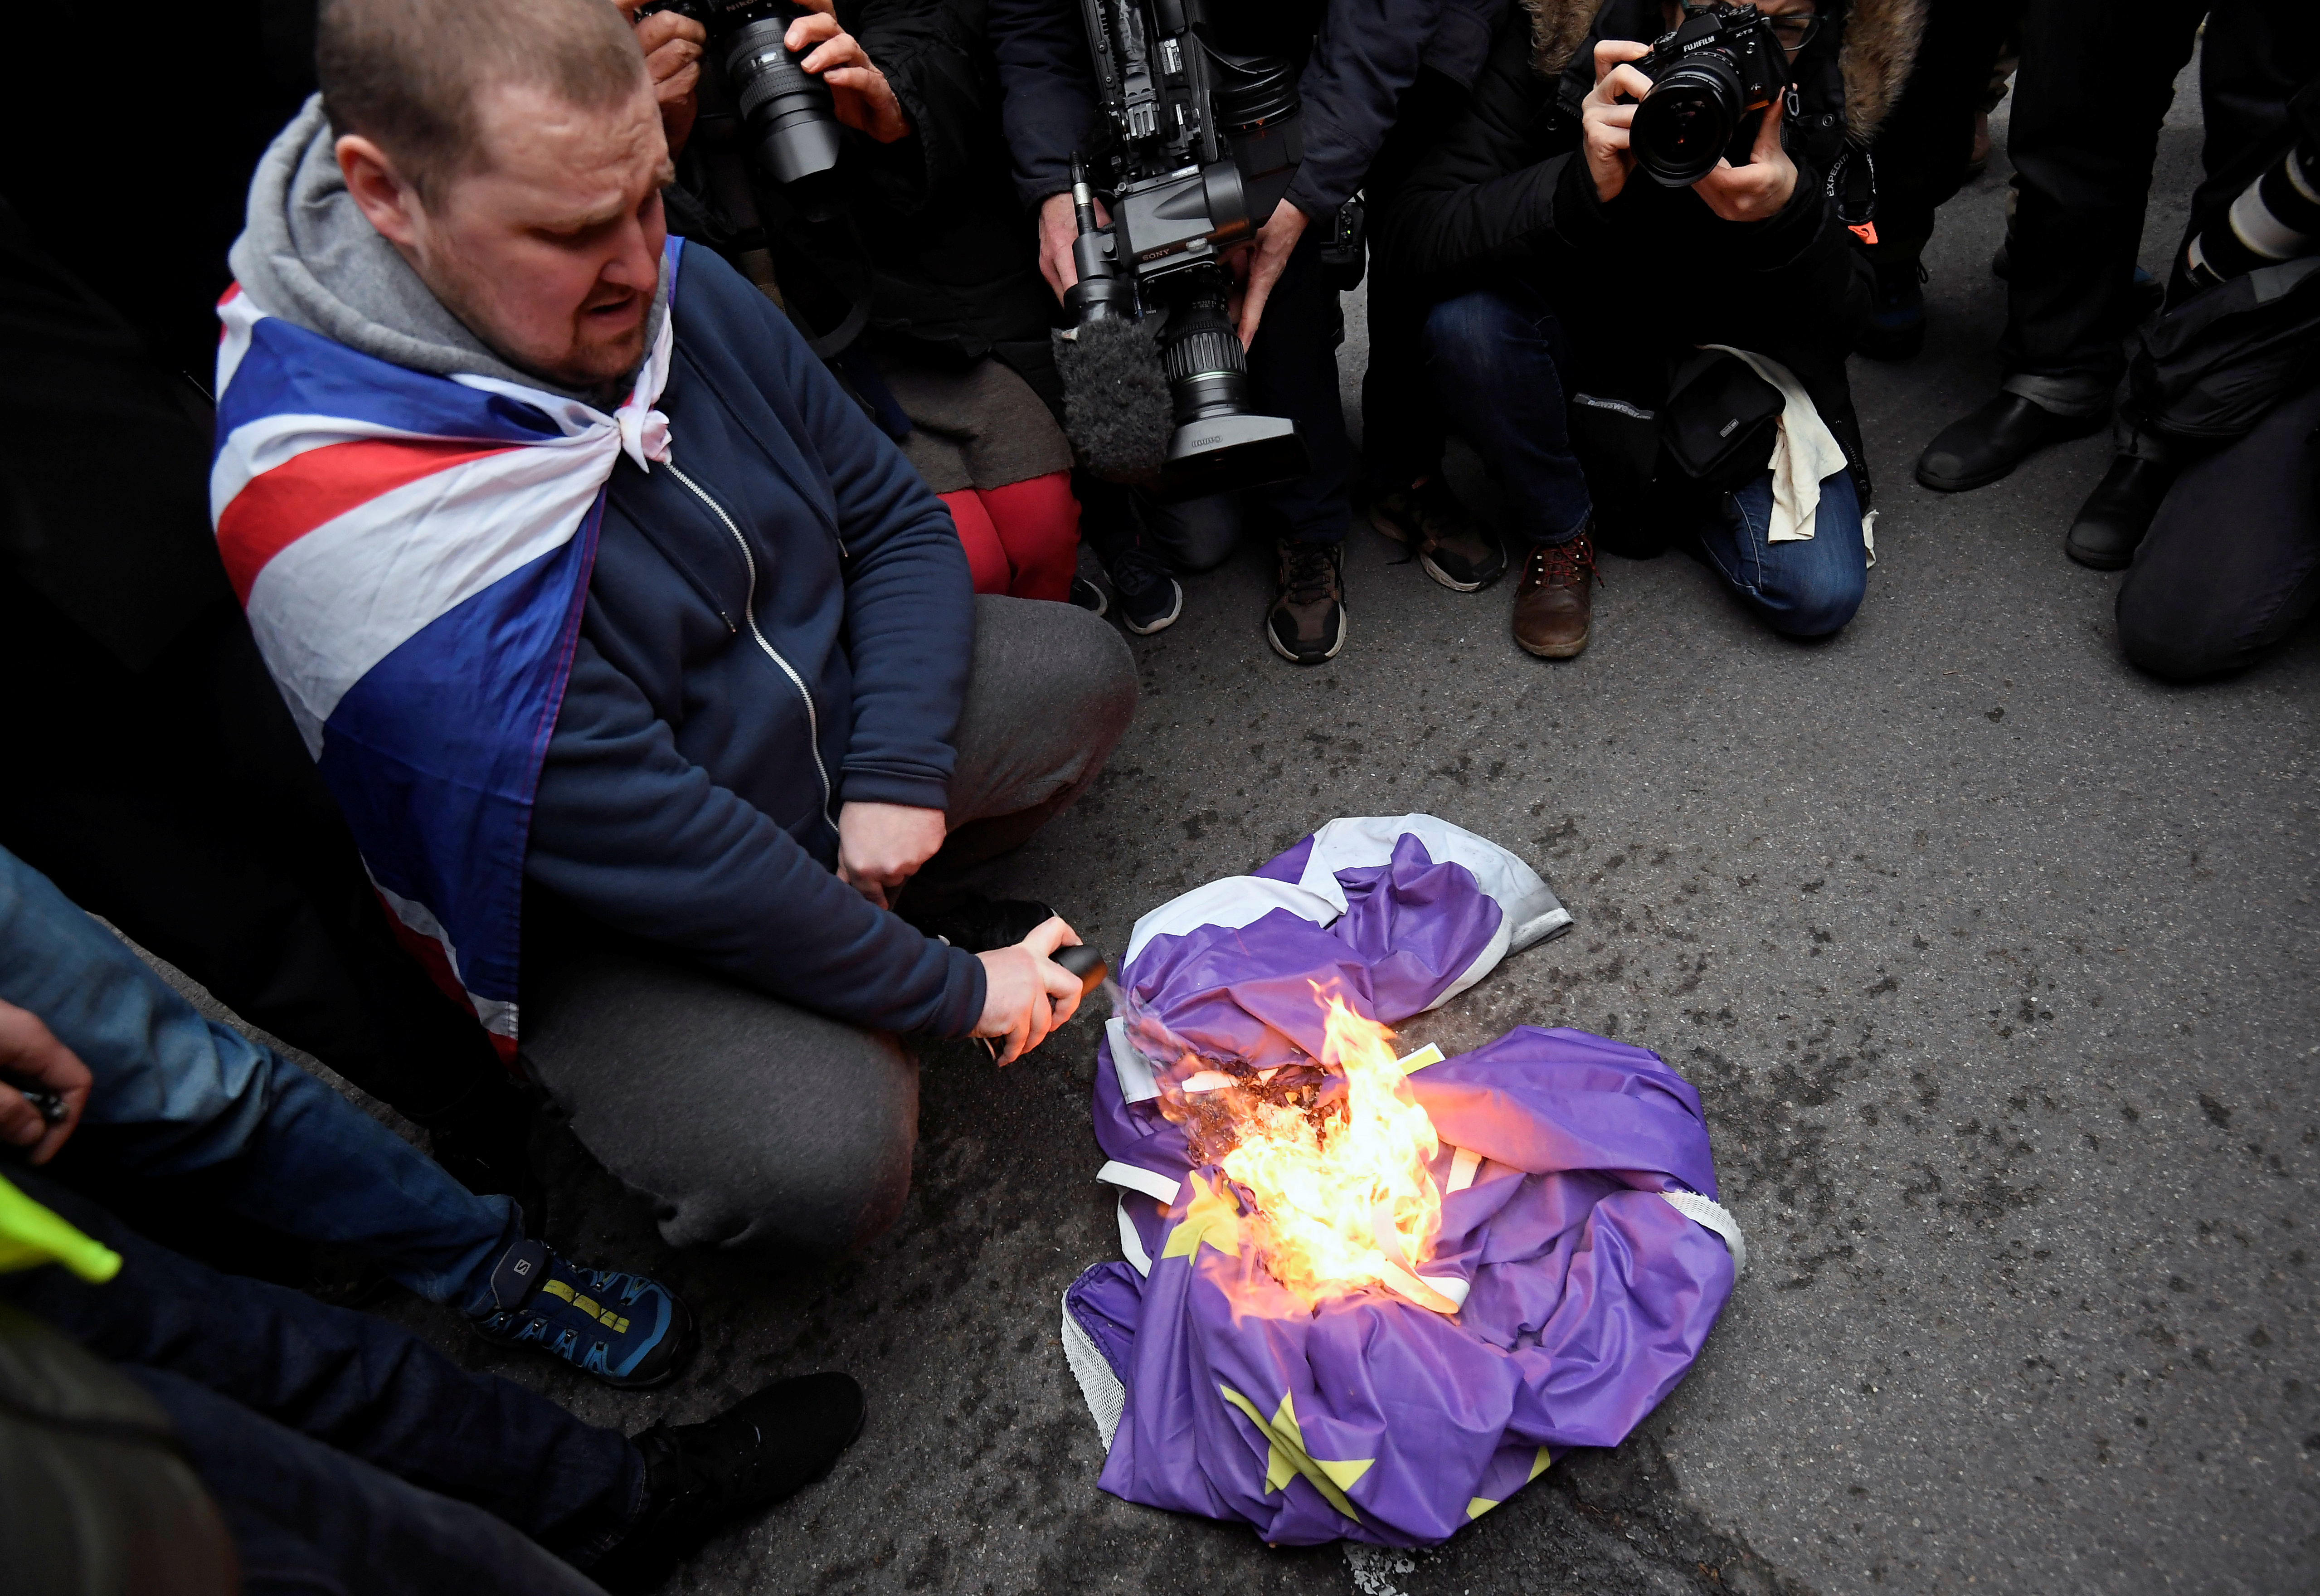 A man burns an EU flag on Brexit day in London, Britain January 31, 2020. REUTERS/Toby Melville